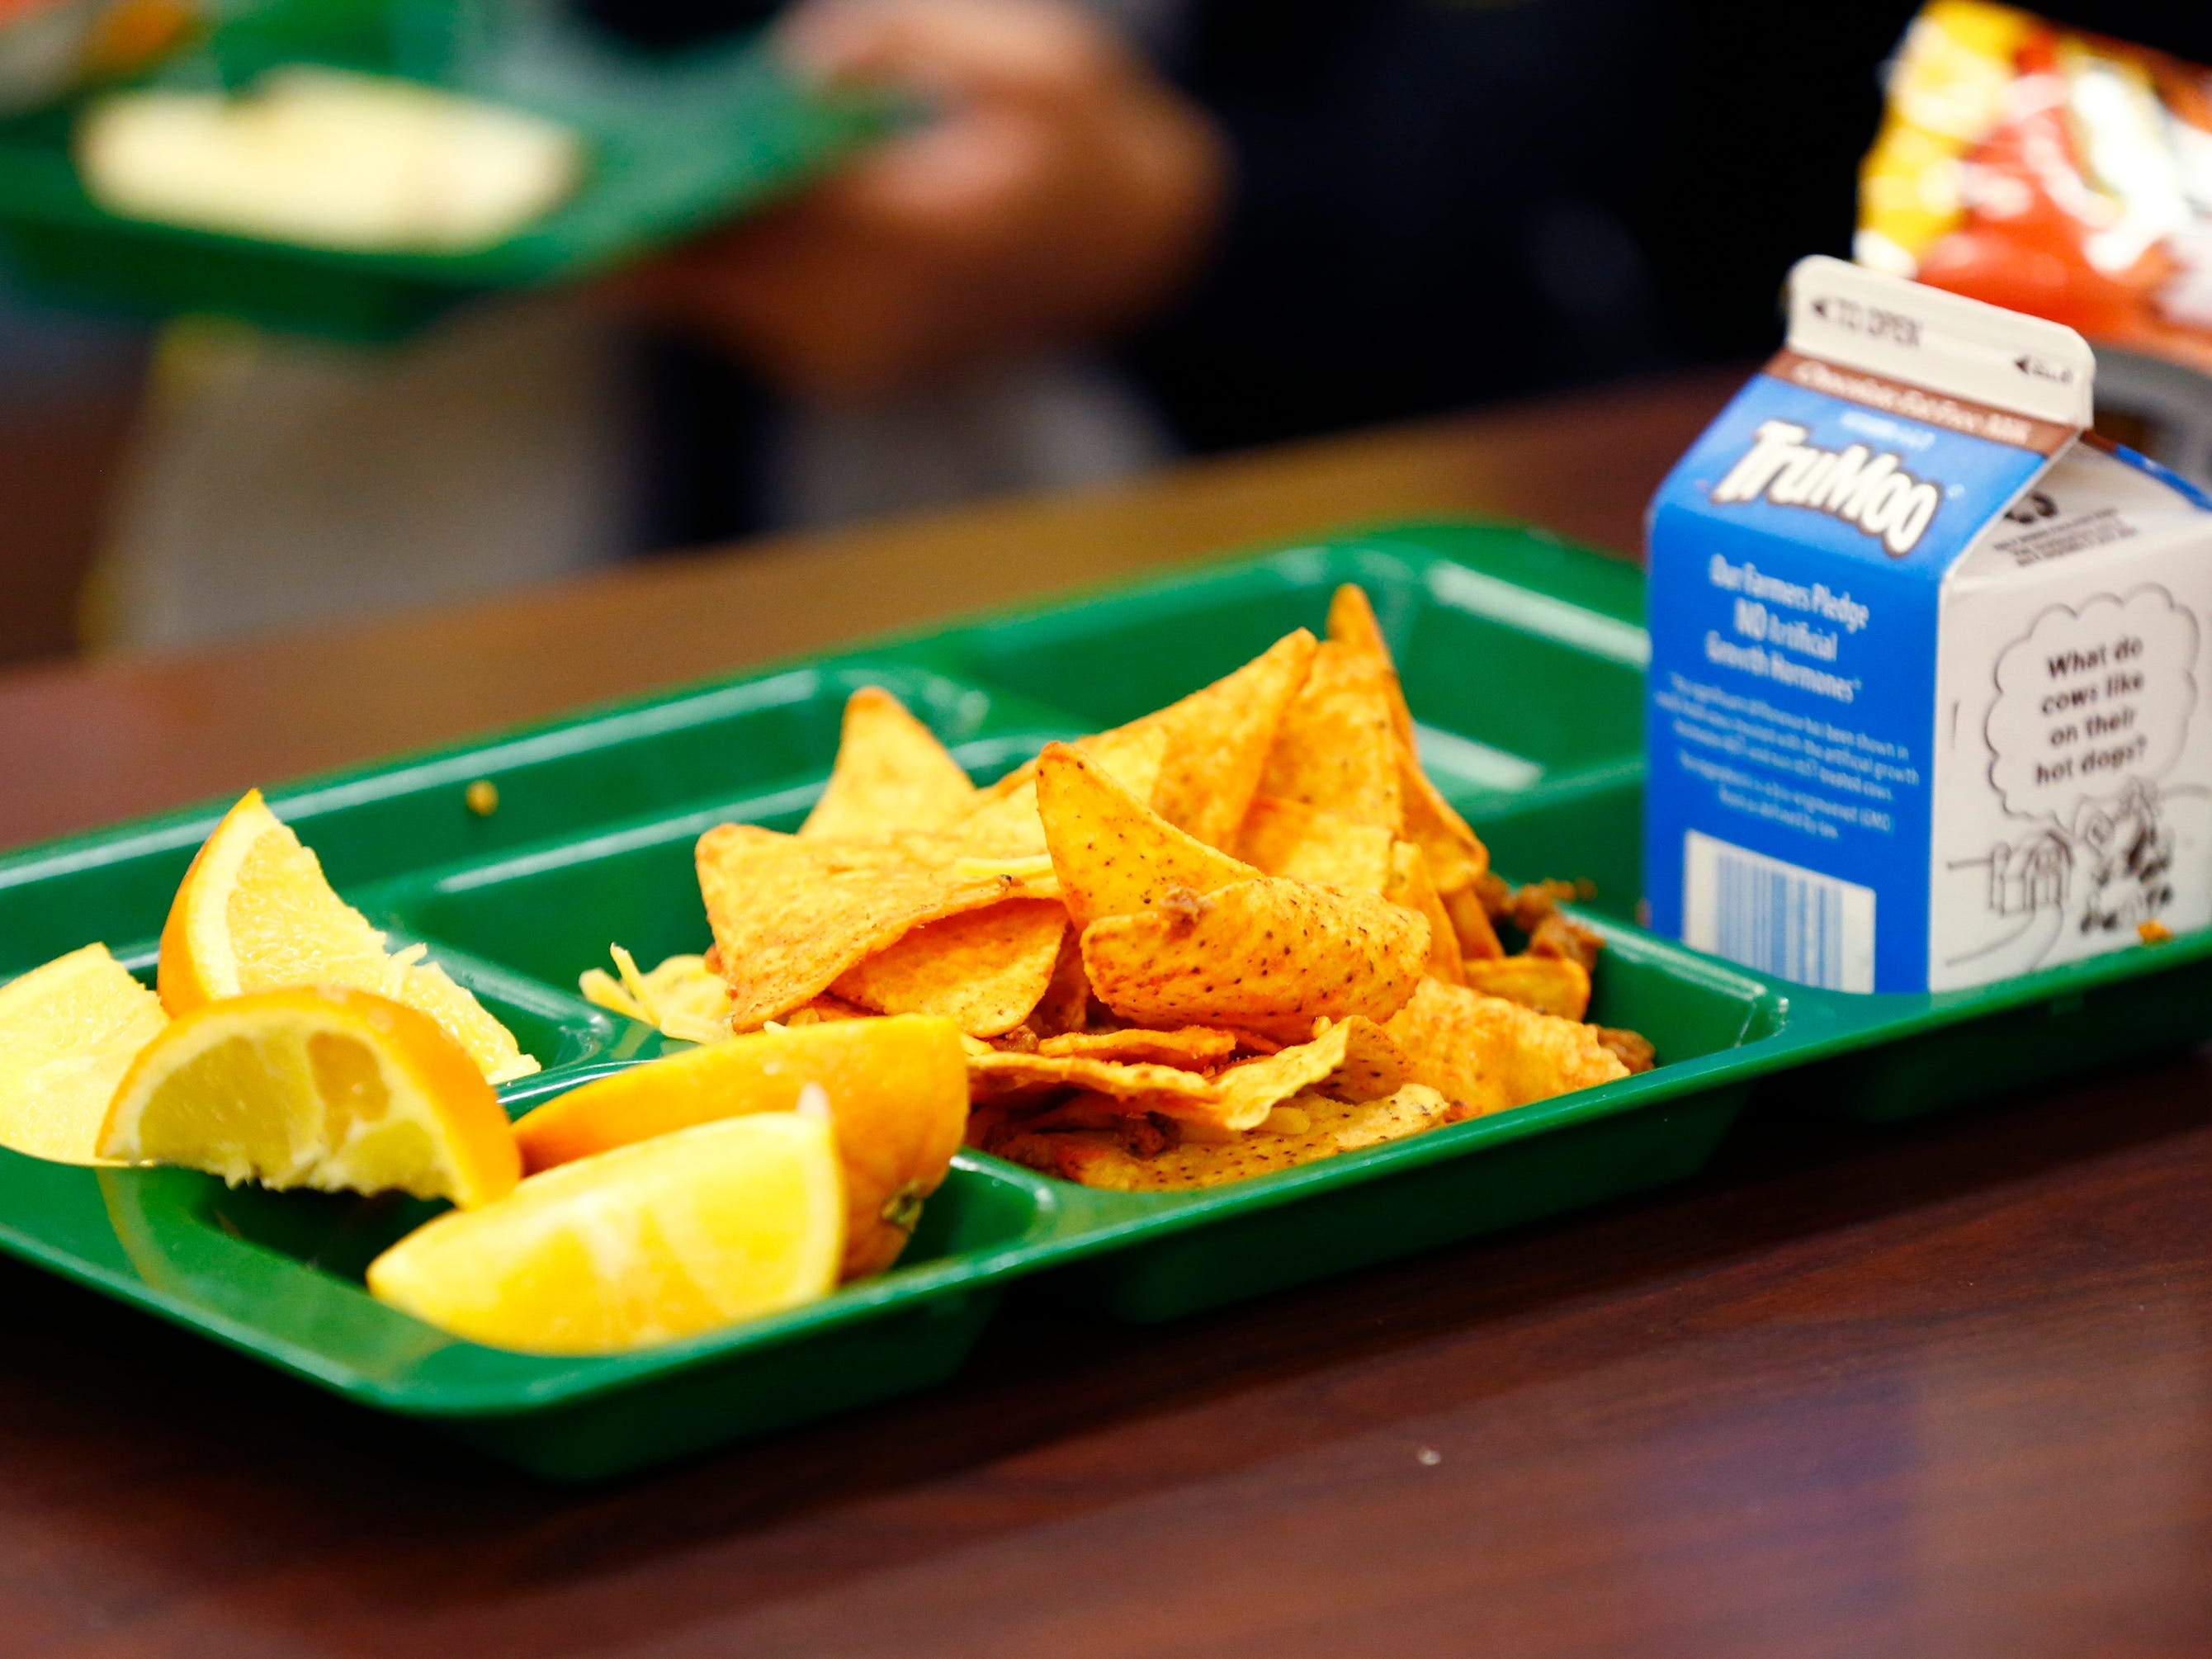 Brown Deer Elementary second grade students lunch on a choice of a walking taco or a chicken salad on Nov. 29.